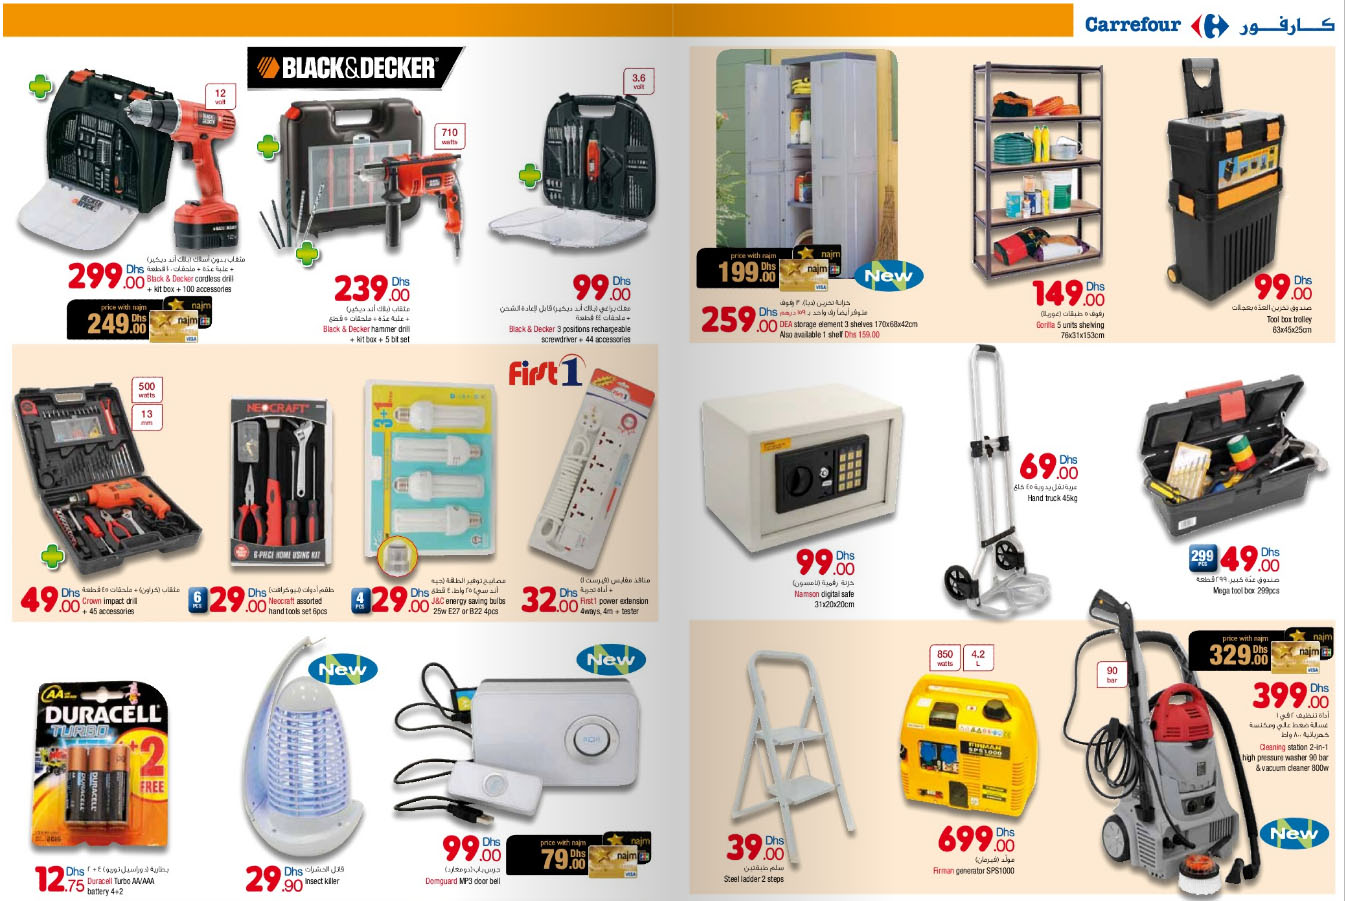 Damn Planet For Smart Shopper Carrefour Low Price And So Much More